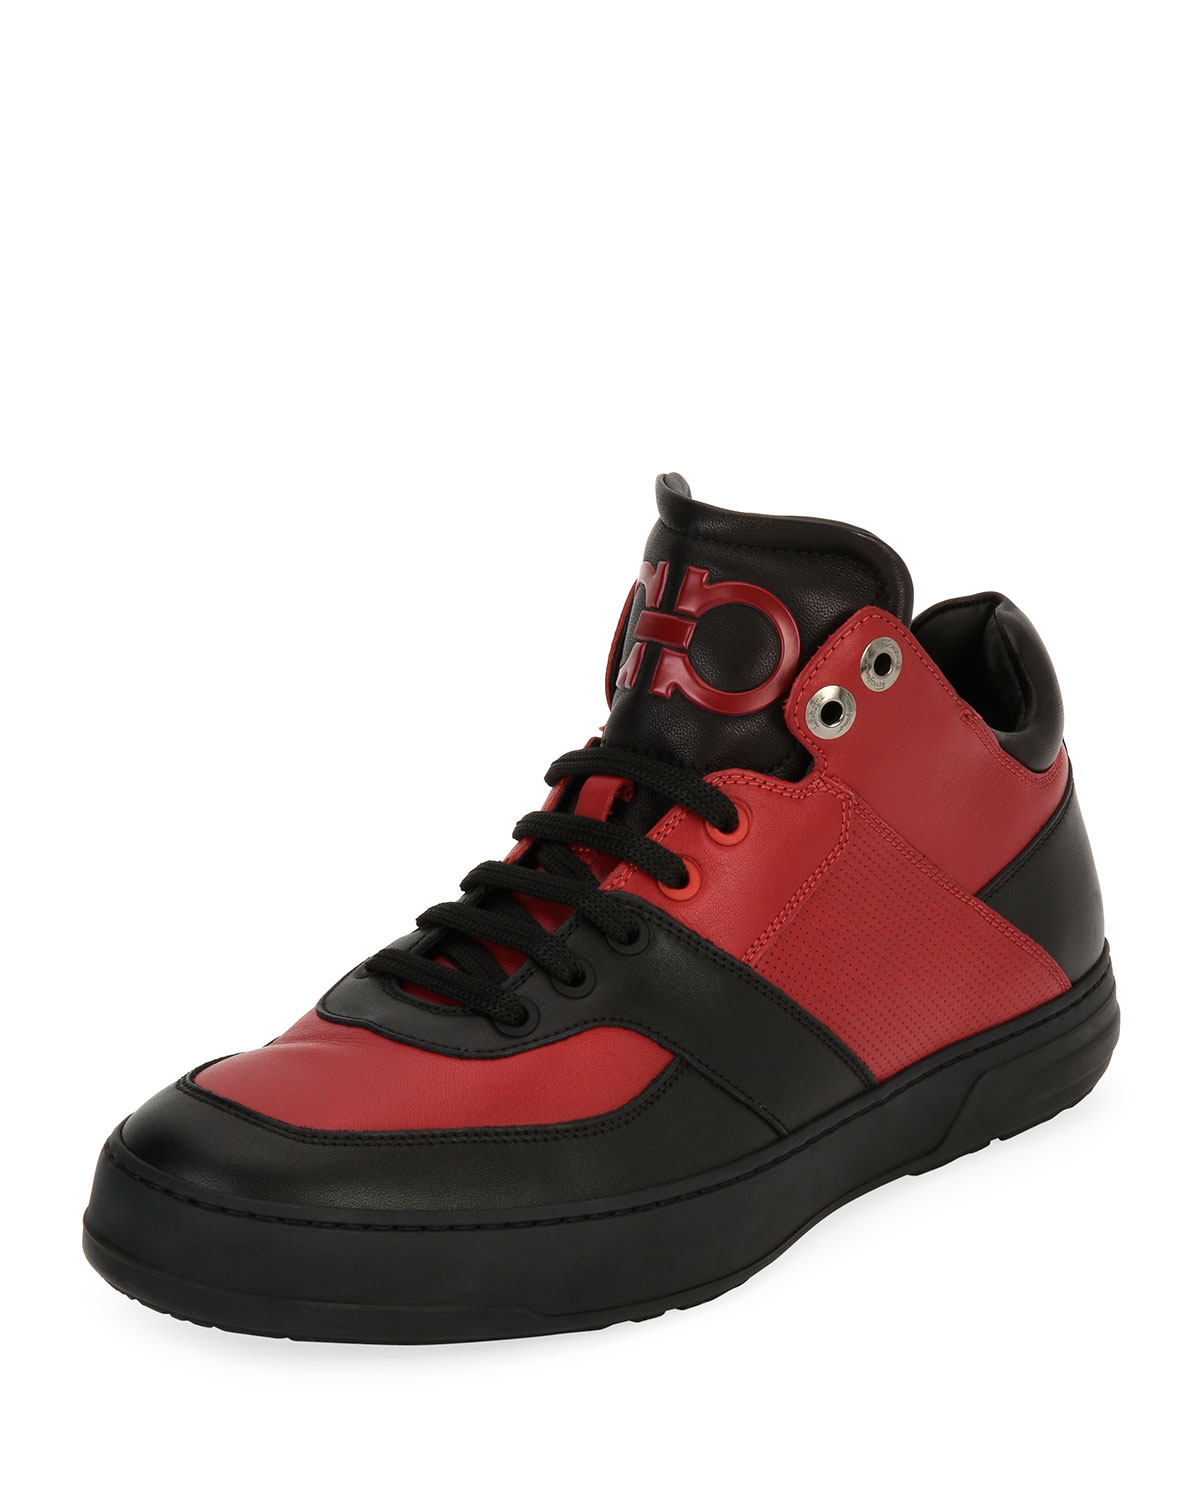 Salvatore FerragamoMen s Leather Mid-Top Sneakers, Black Red (Nero Rosso) c9ac4380ee